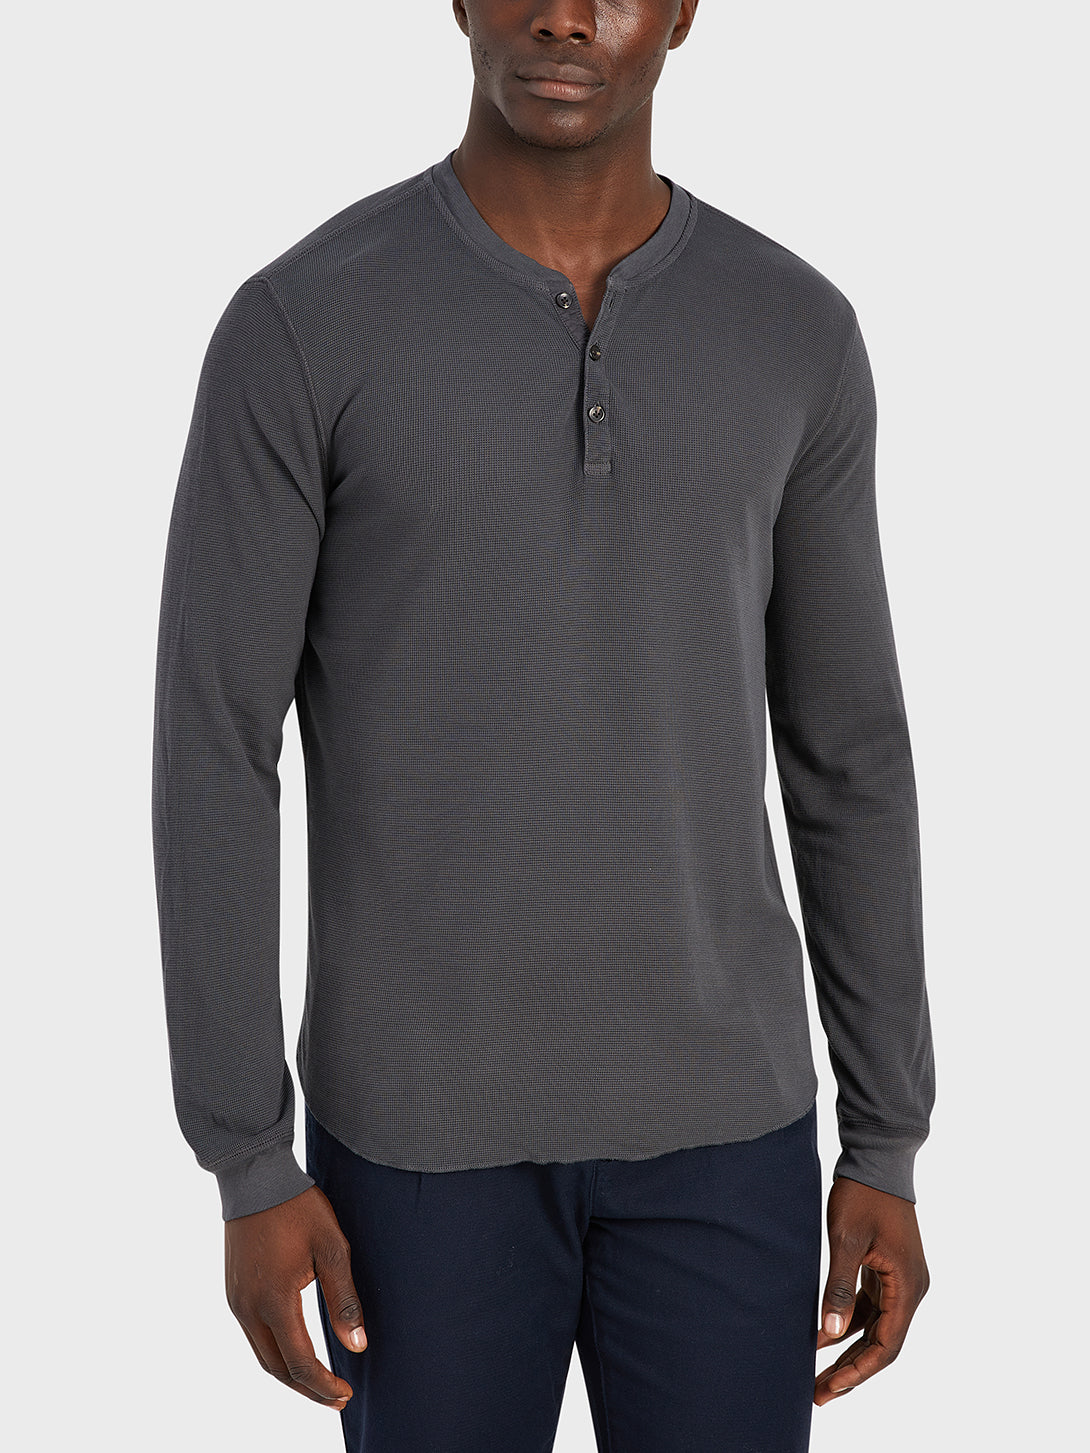 black friday deals ONS Clothing Men's COURT WAFFLE HENLEY Pre-shrunk Cotton in CHARCOAL Pima Cotton